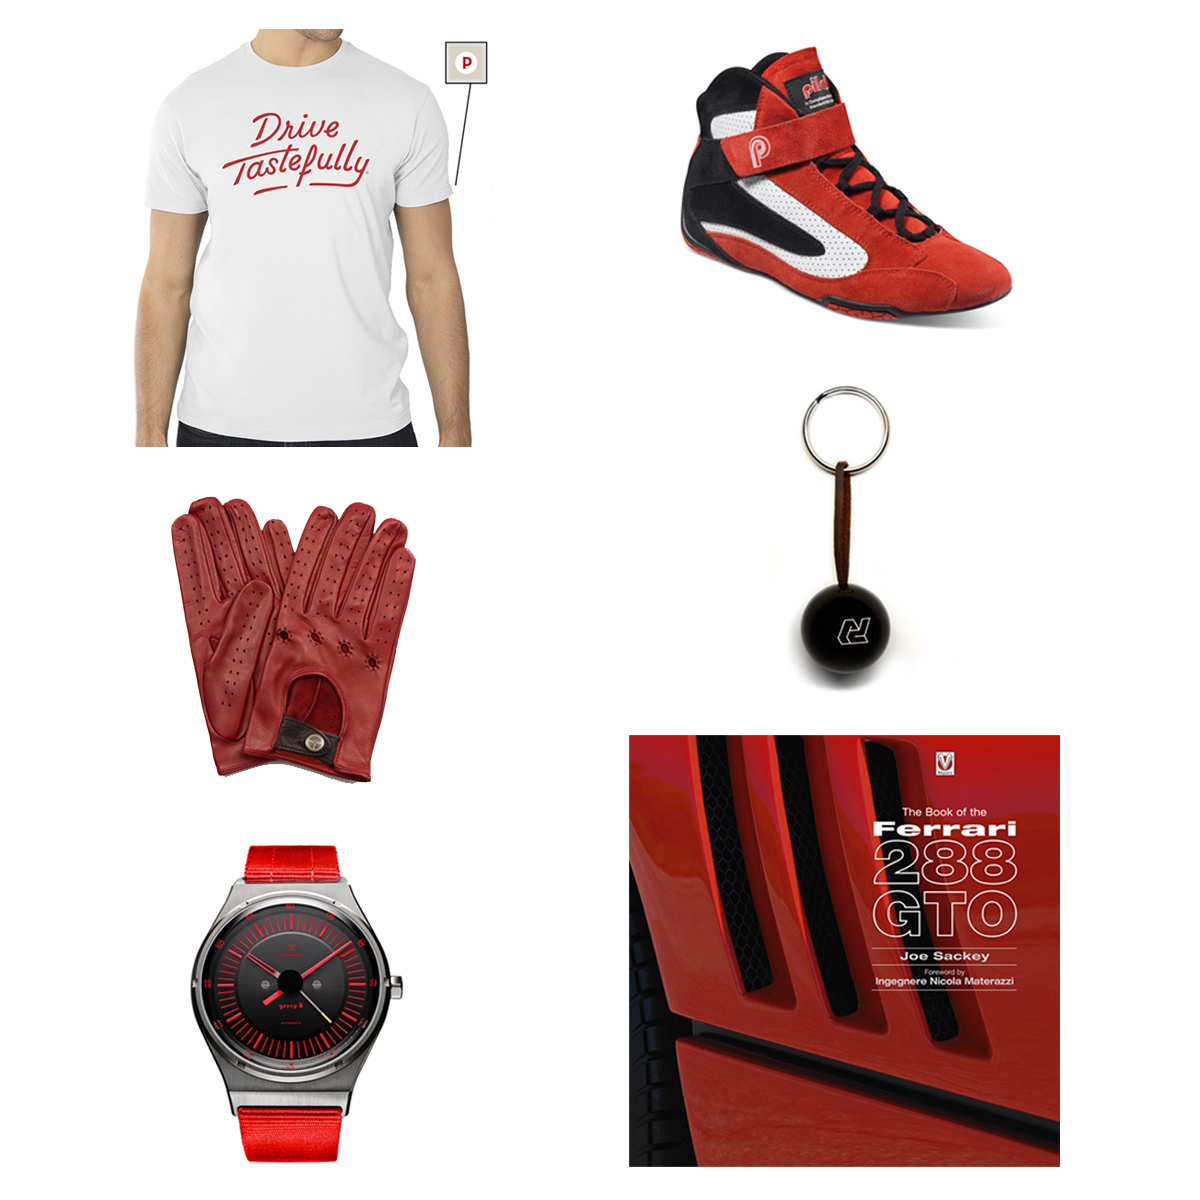 2016 Holiday Gift Guide #1: Rosso Corsa